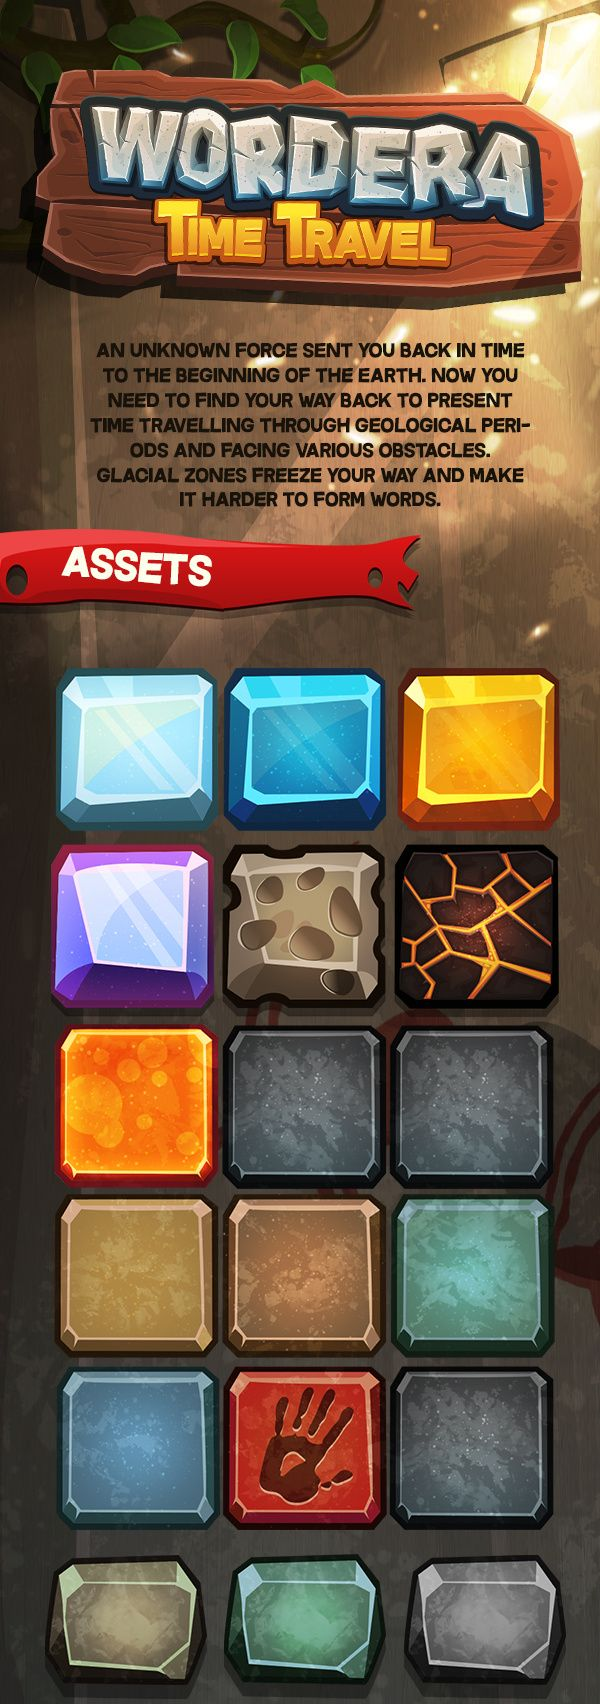 An idea for themed levels, to have the buttons represent different themes